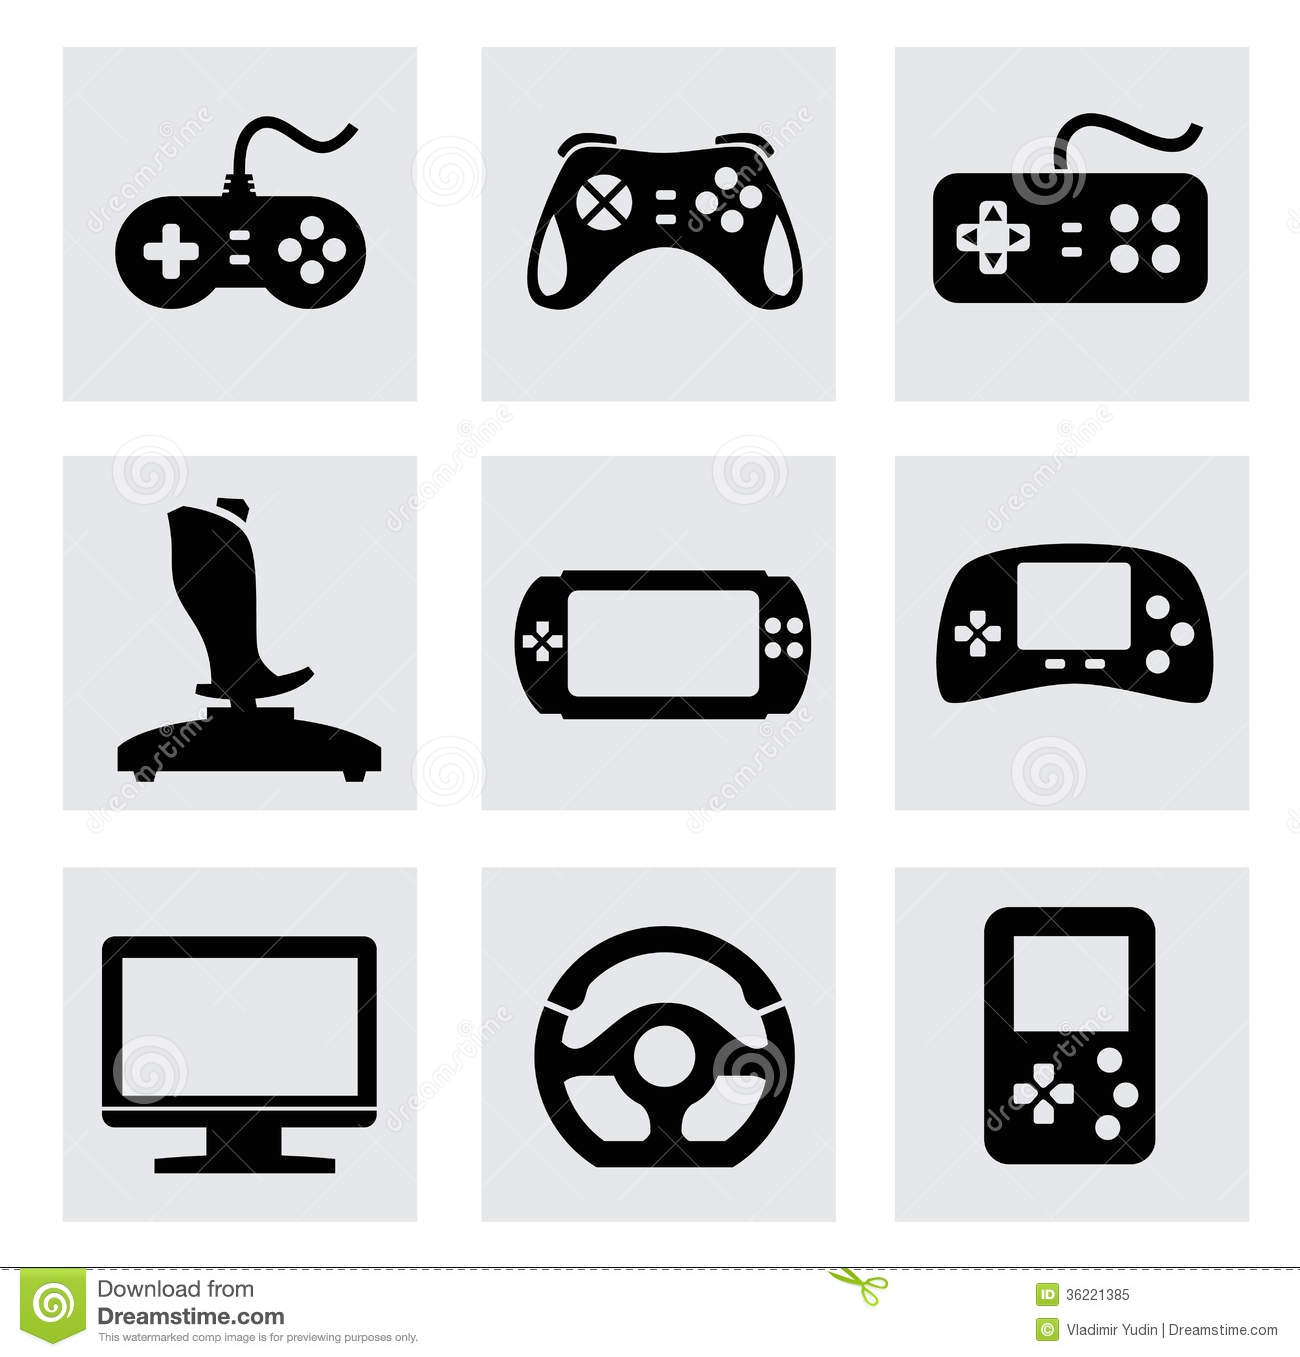 13 Joystick Game Controller Vector Images